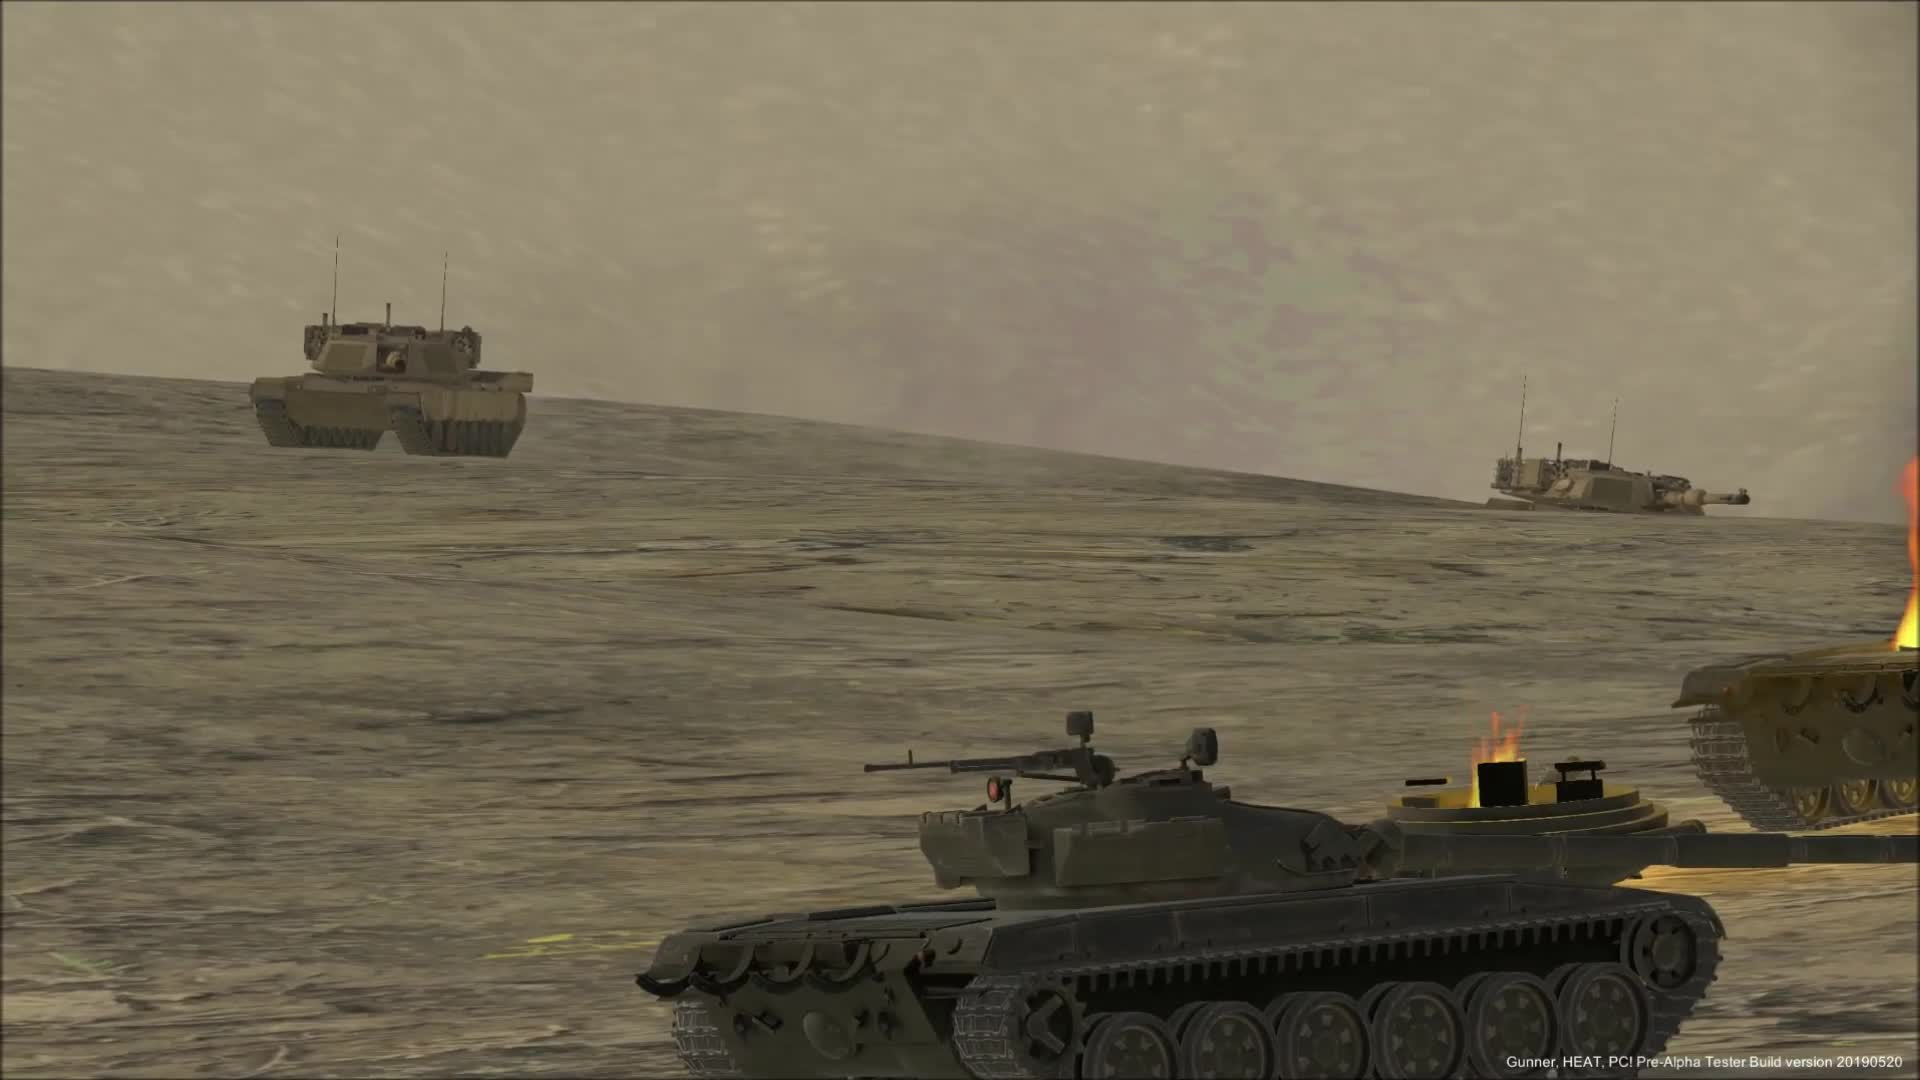 Tank Simulator Gifs Search | Search & Share on Homdor